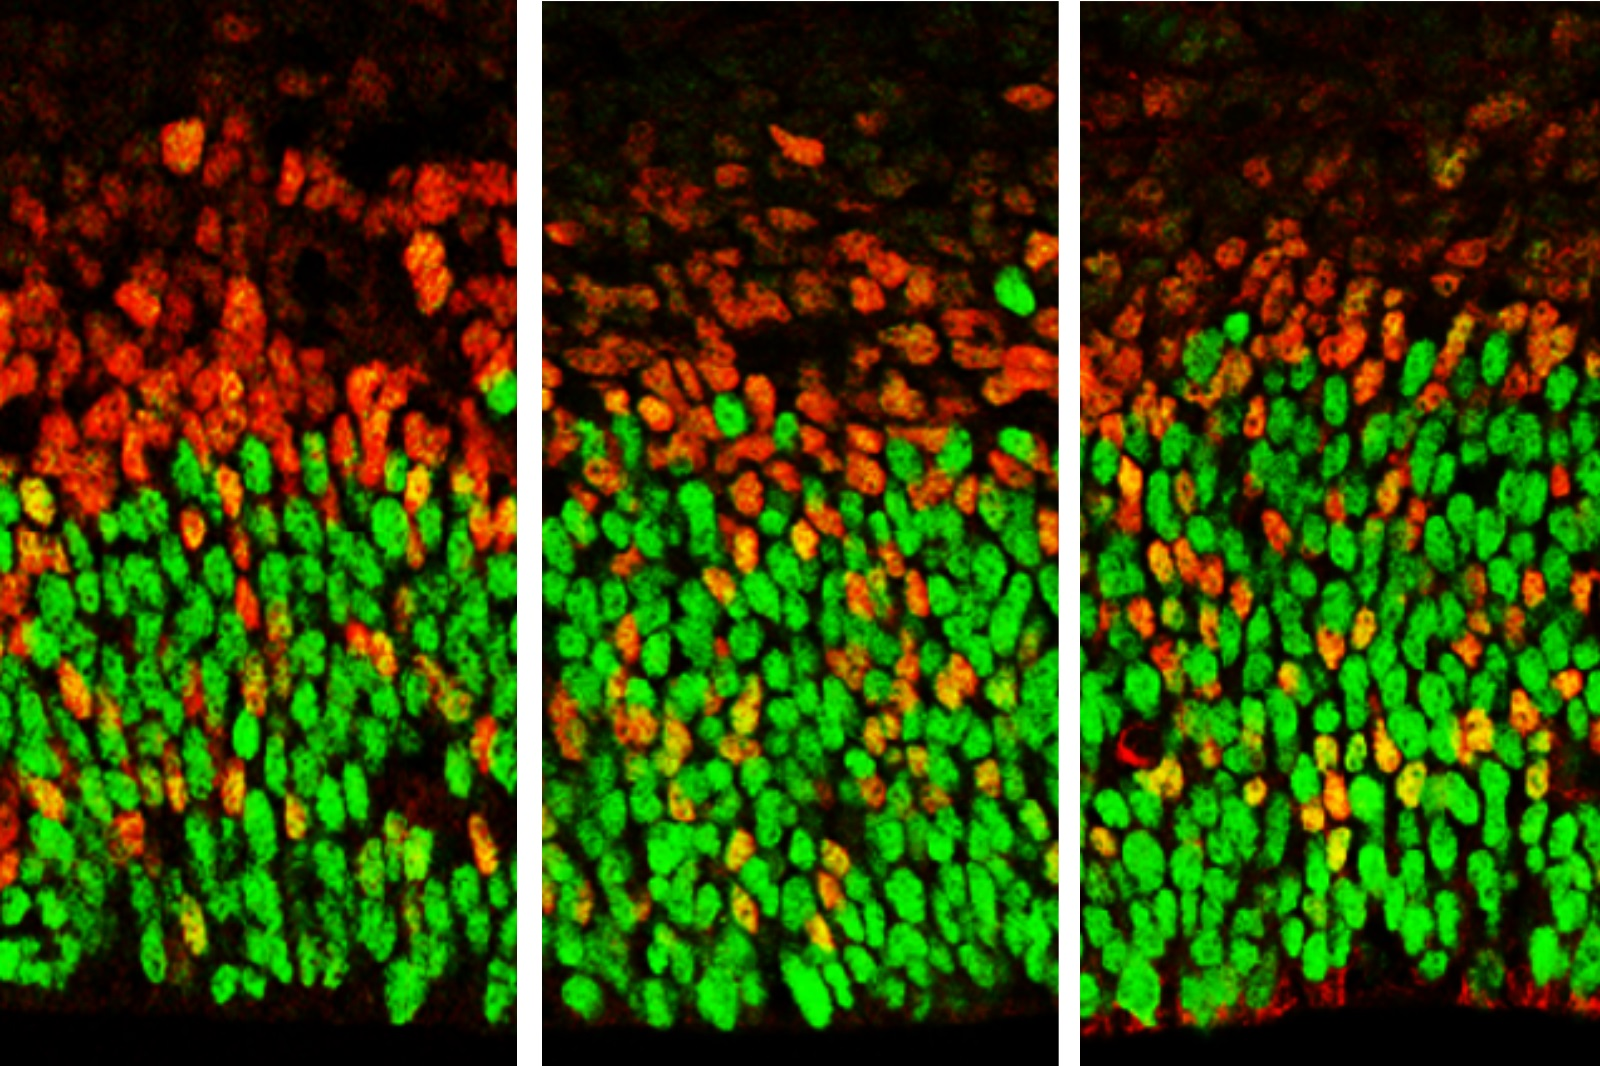 Image showing brain cells with lower levels of Foxp1 function (at left) and higher levels (right). Apical radial glia are stained in green and secondary progenitors and neurons stained in red.